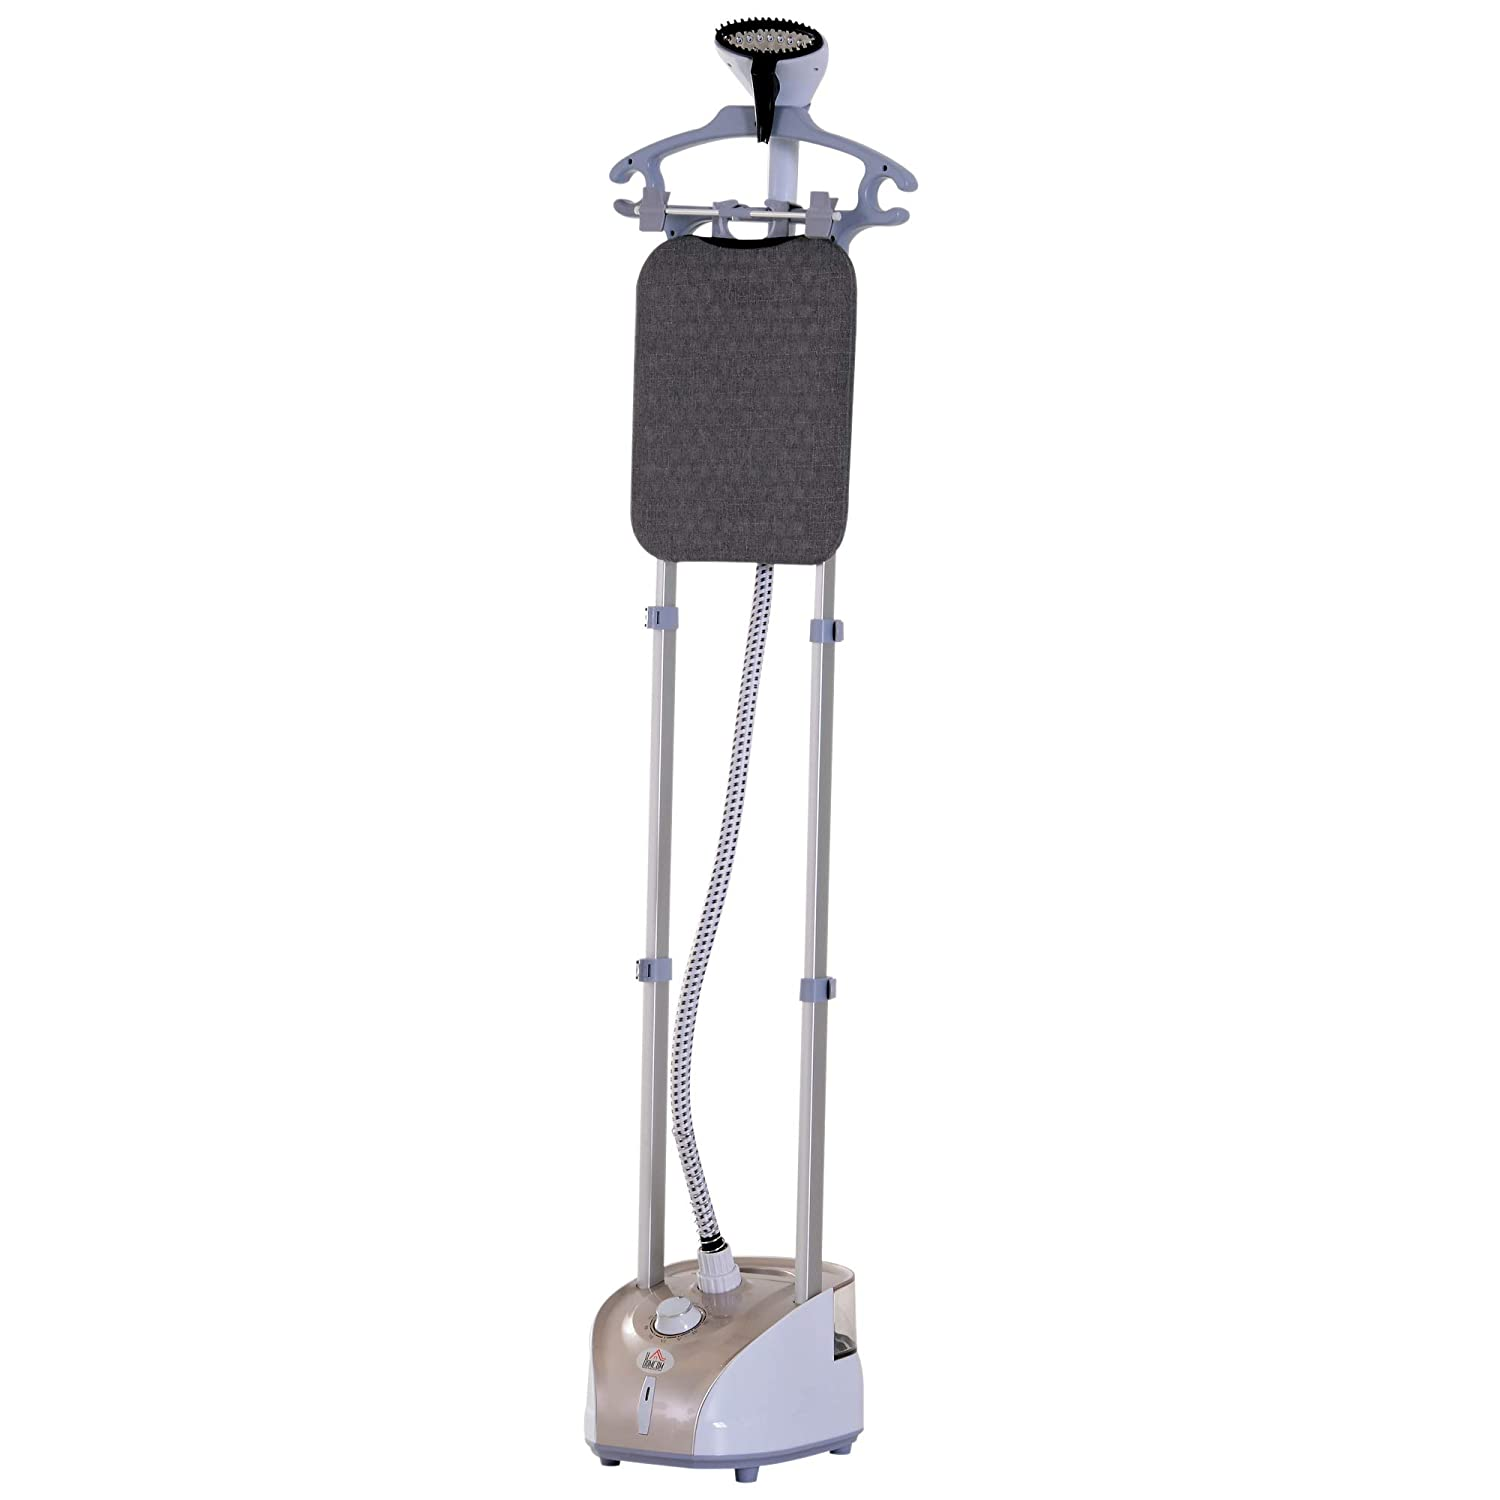 HOMCOM 1350W Upright Fabric Garment Steamer with Built-in Ironing Board and Hanger,2L Water Tank